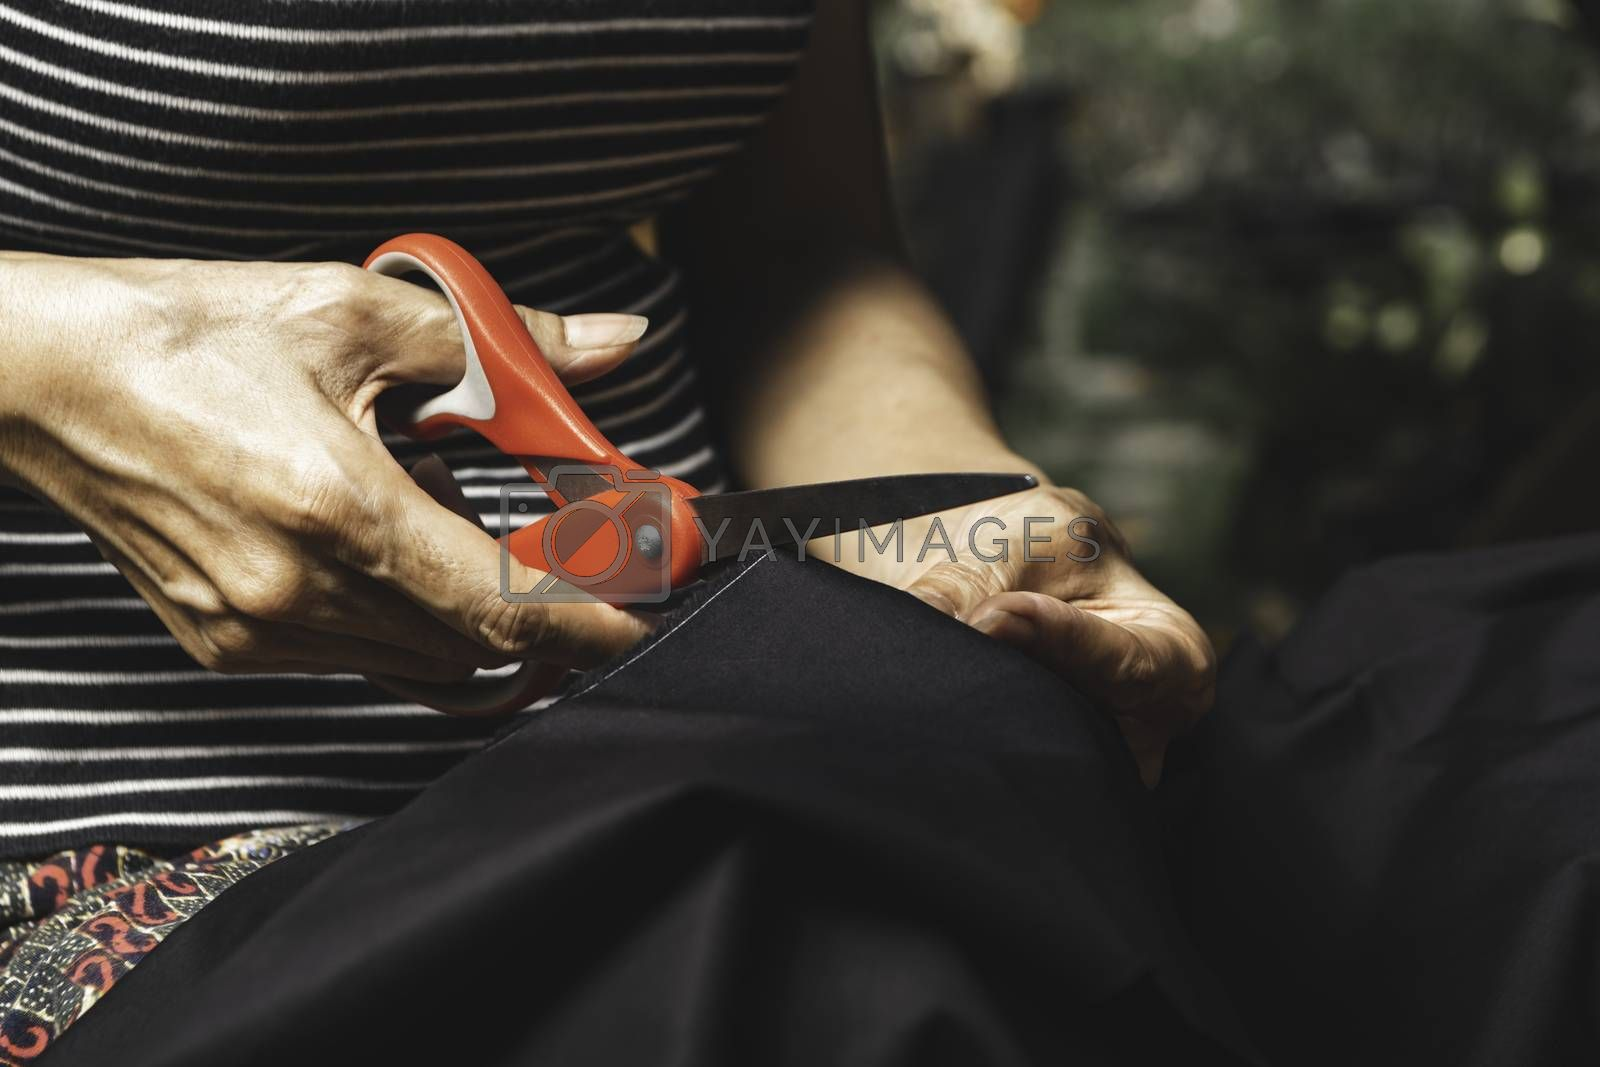 Woman cutting black fabric with scissors. Housework and lifestyle concept.